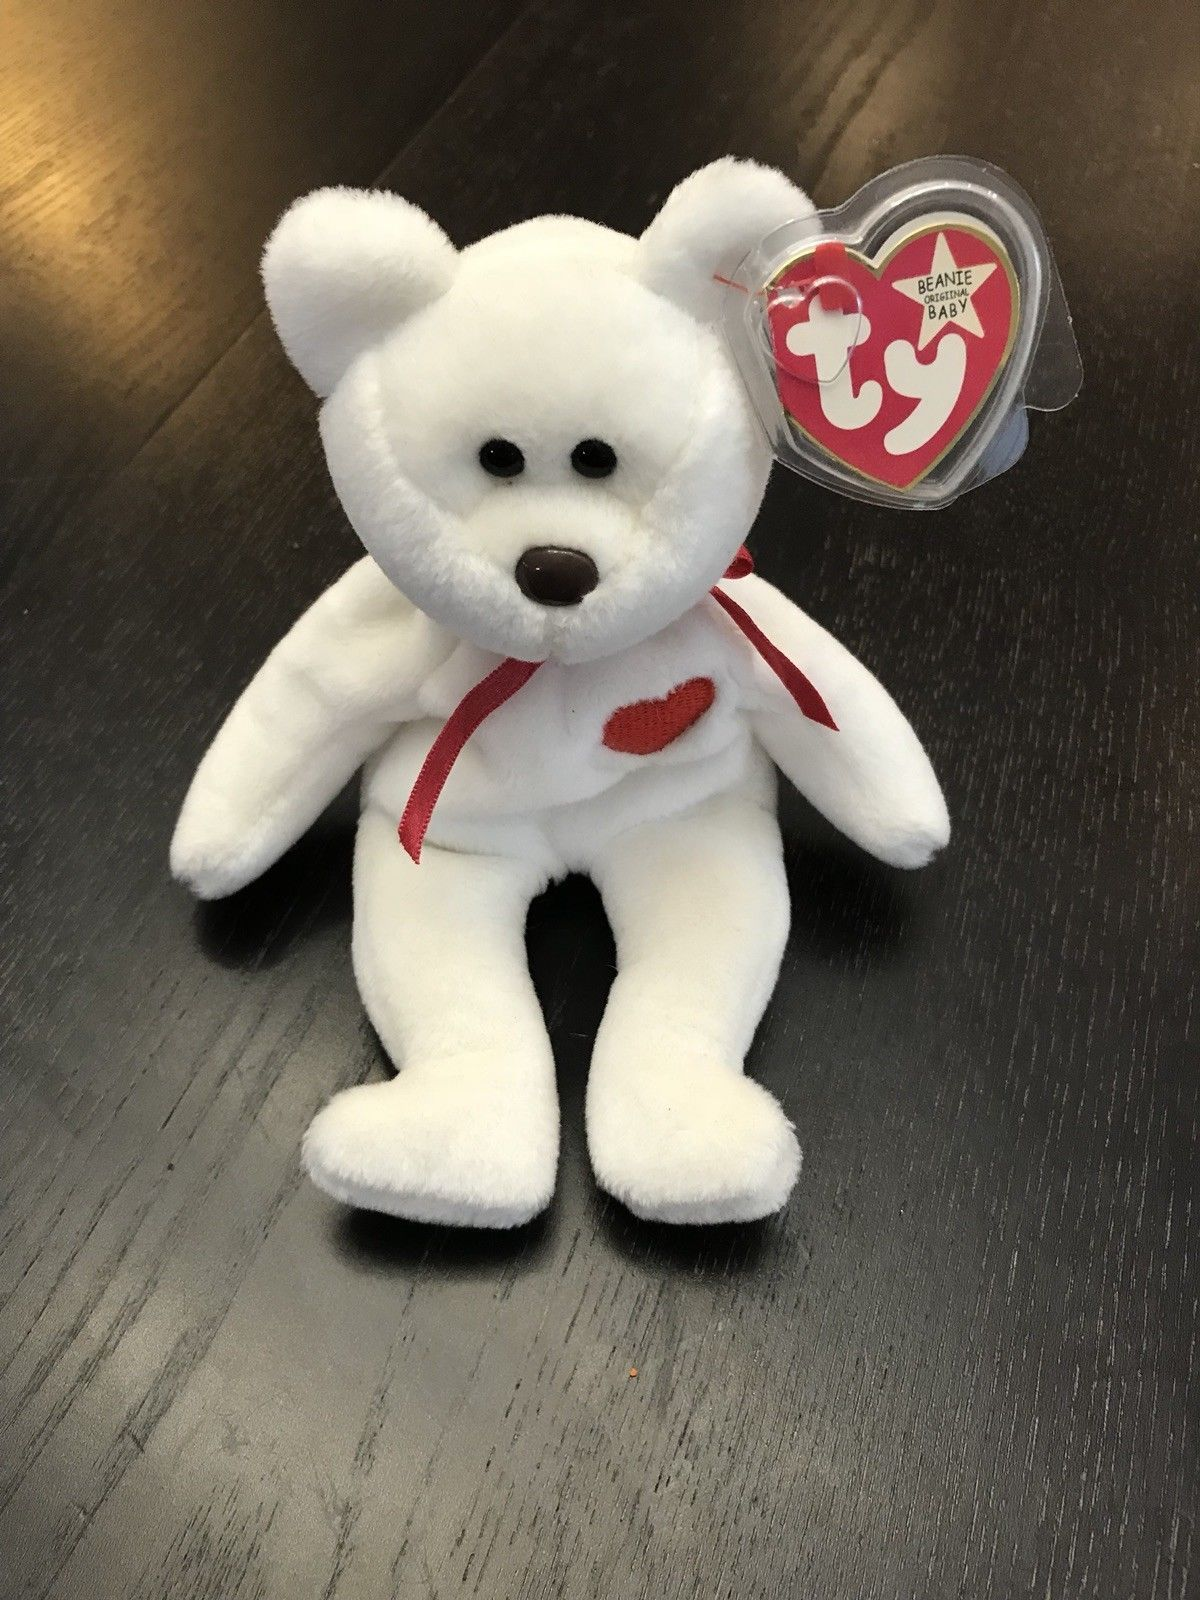 The 20 Expensive Collectible Beanie Babies Will Make You Rich - Most  Valuable Beanie Babies c463485fc2